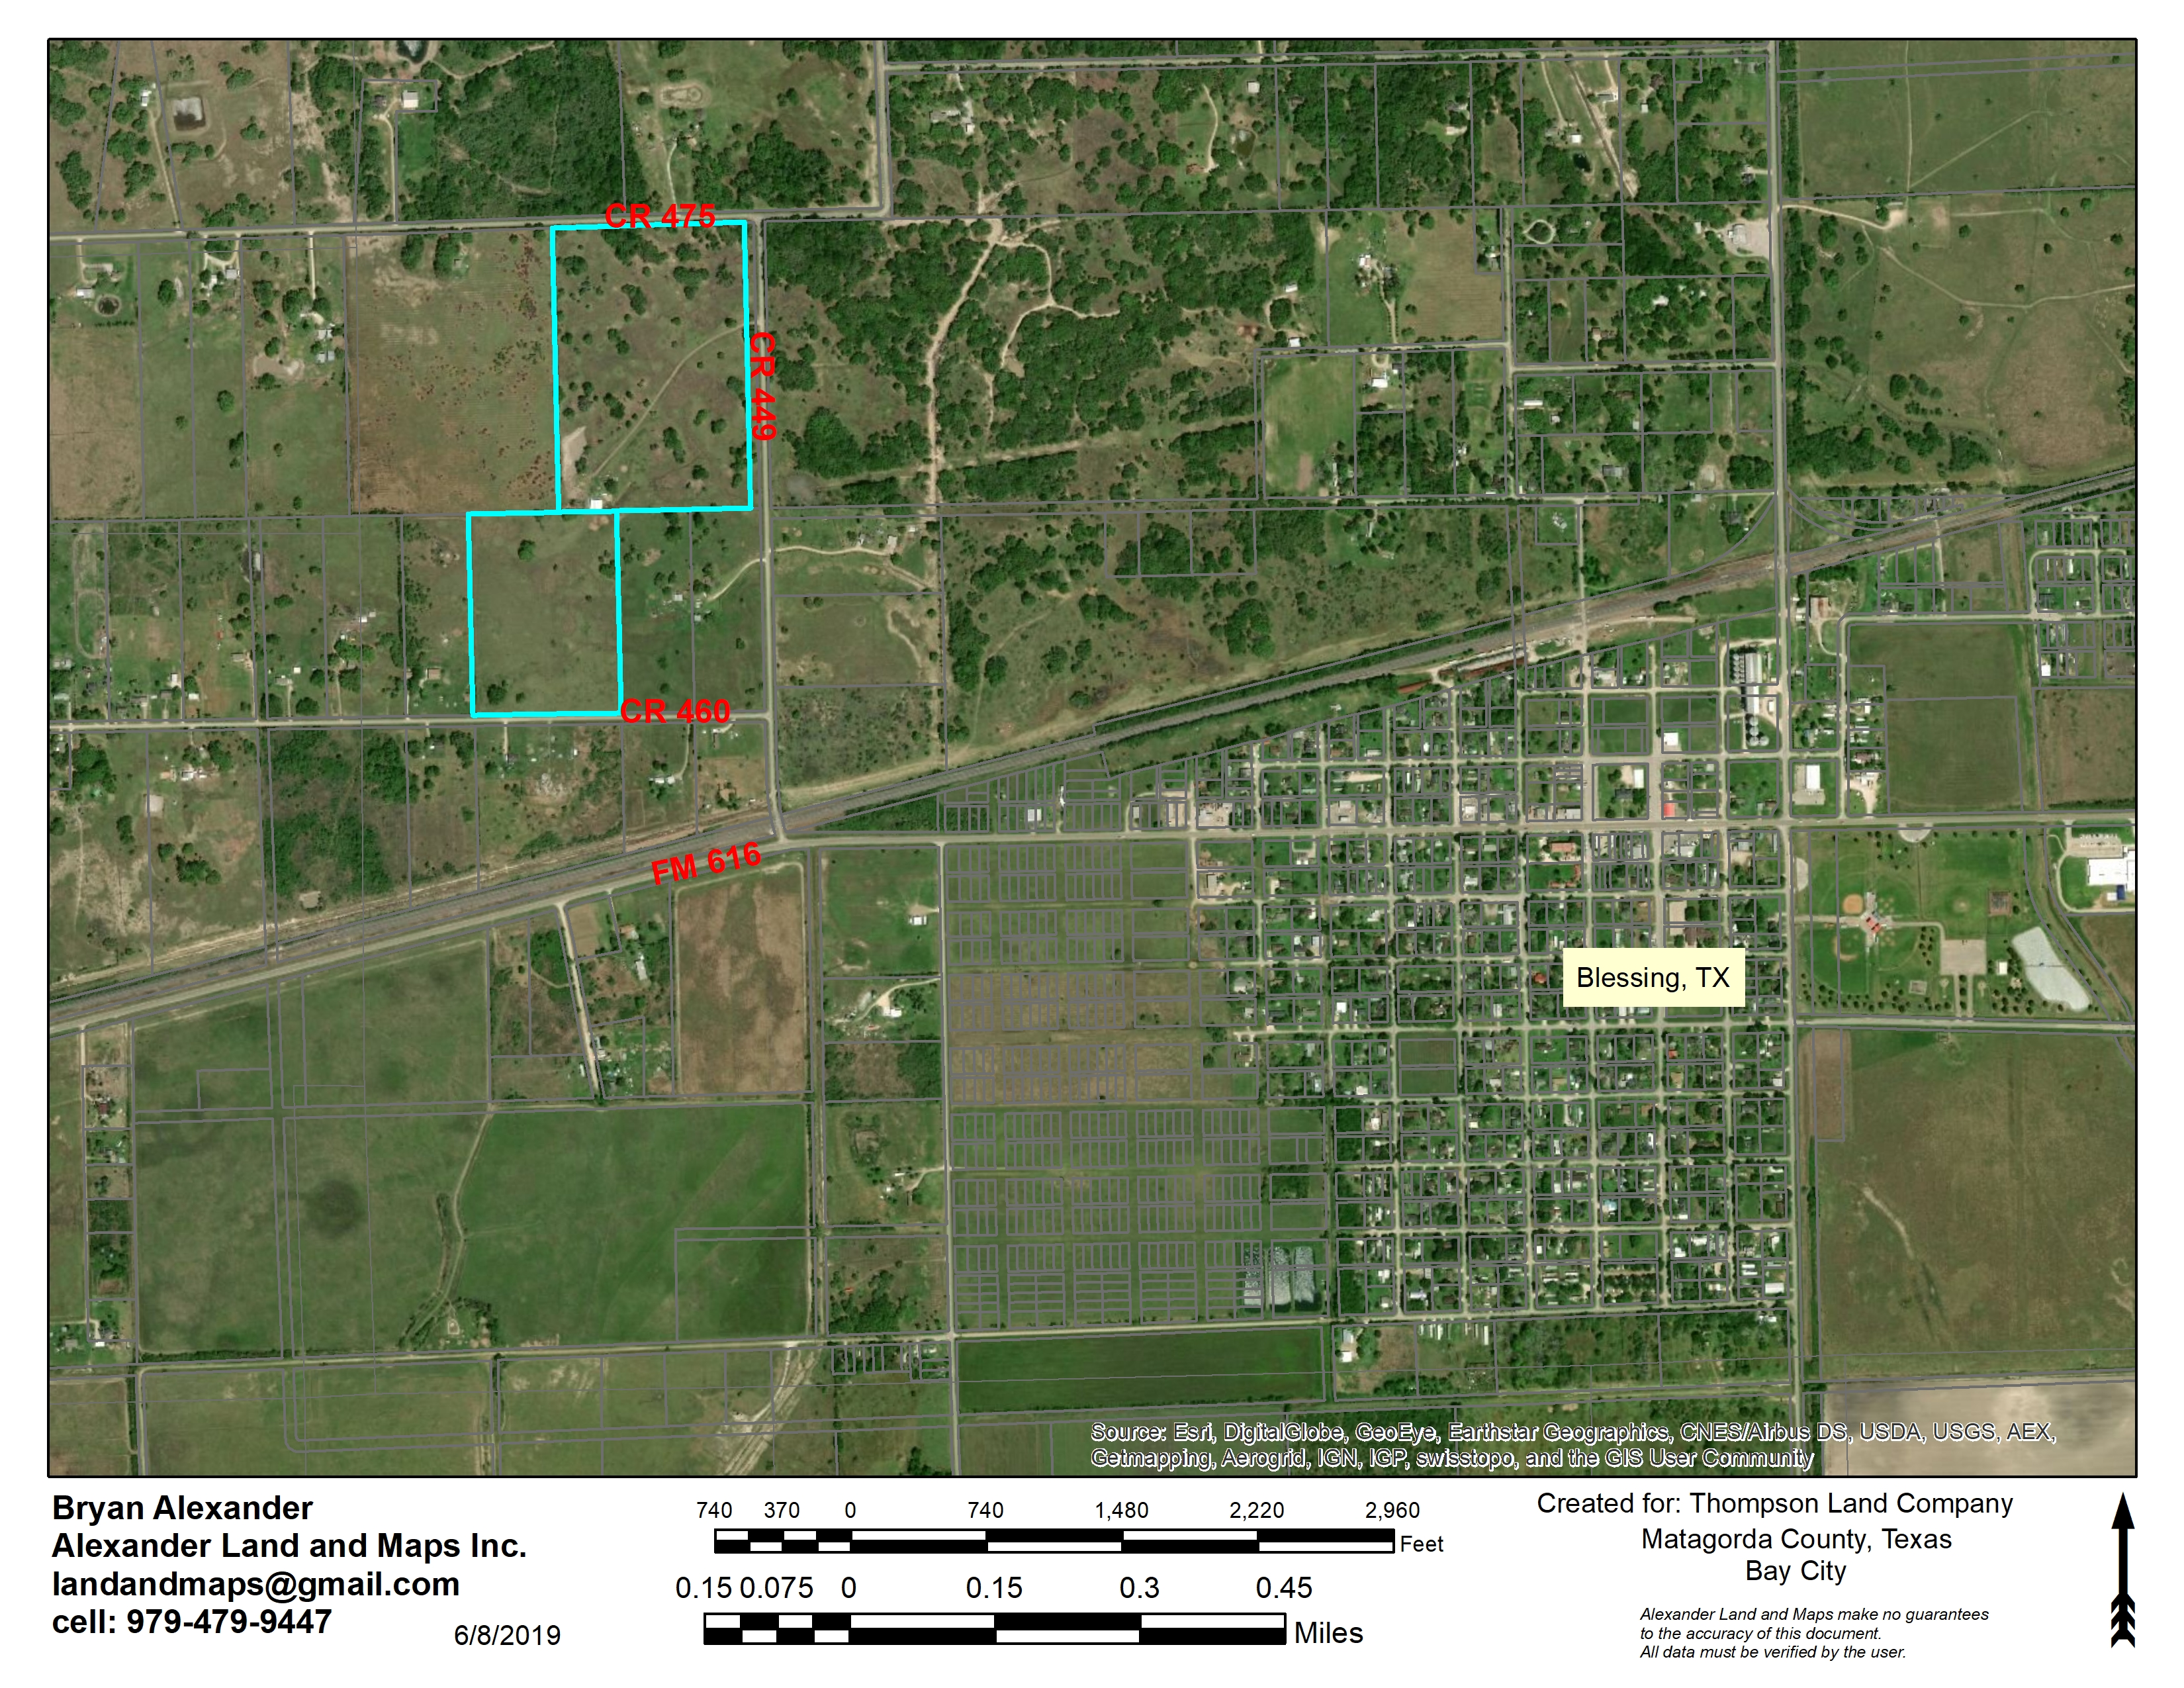 60 Acres in Blessing, TX